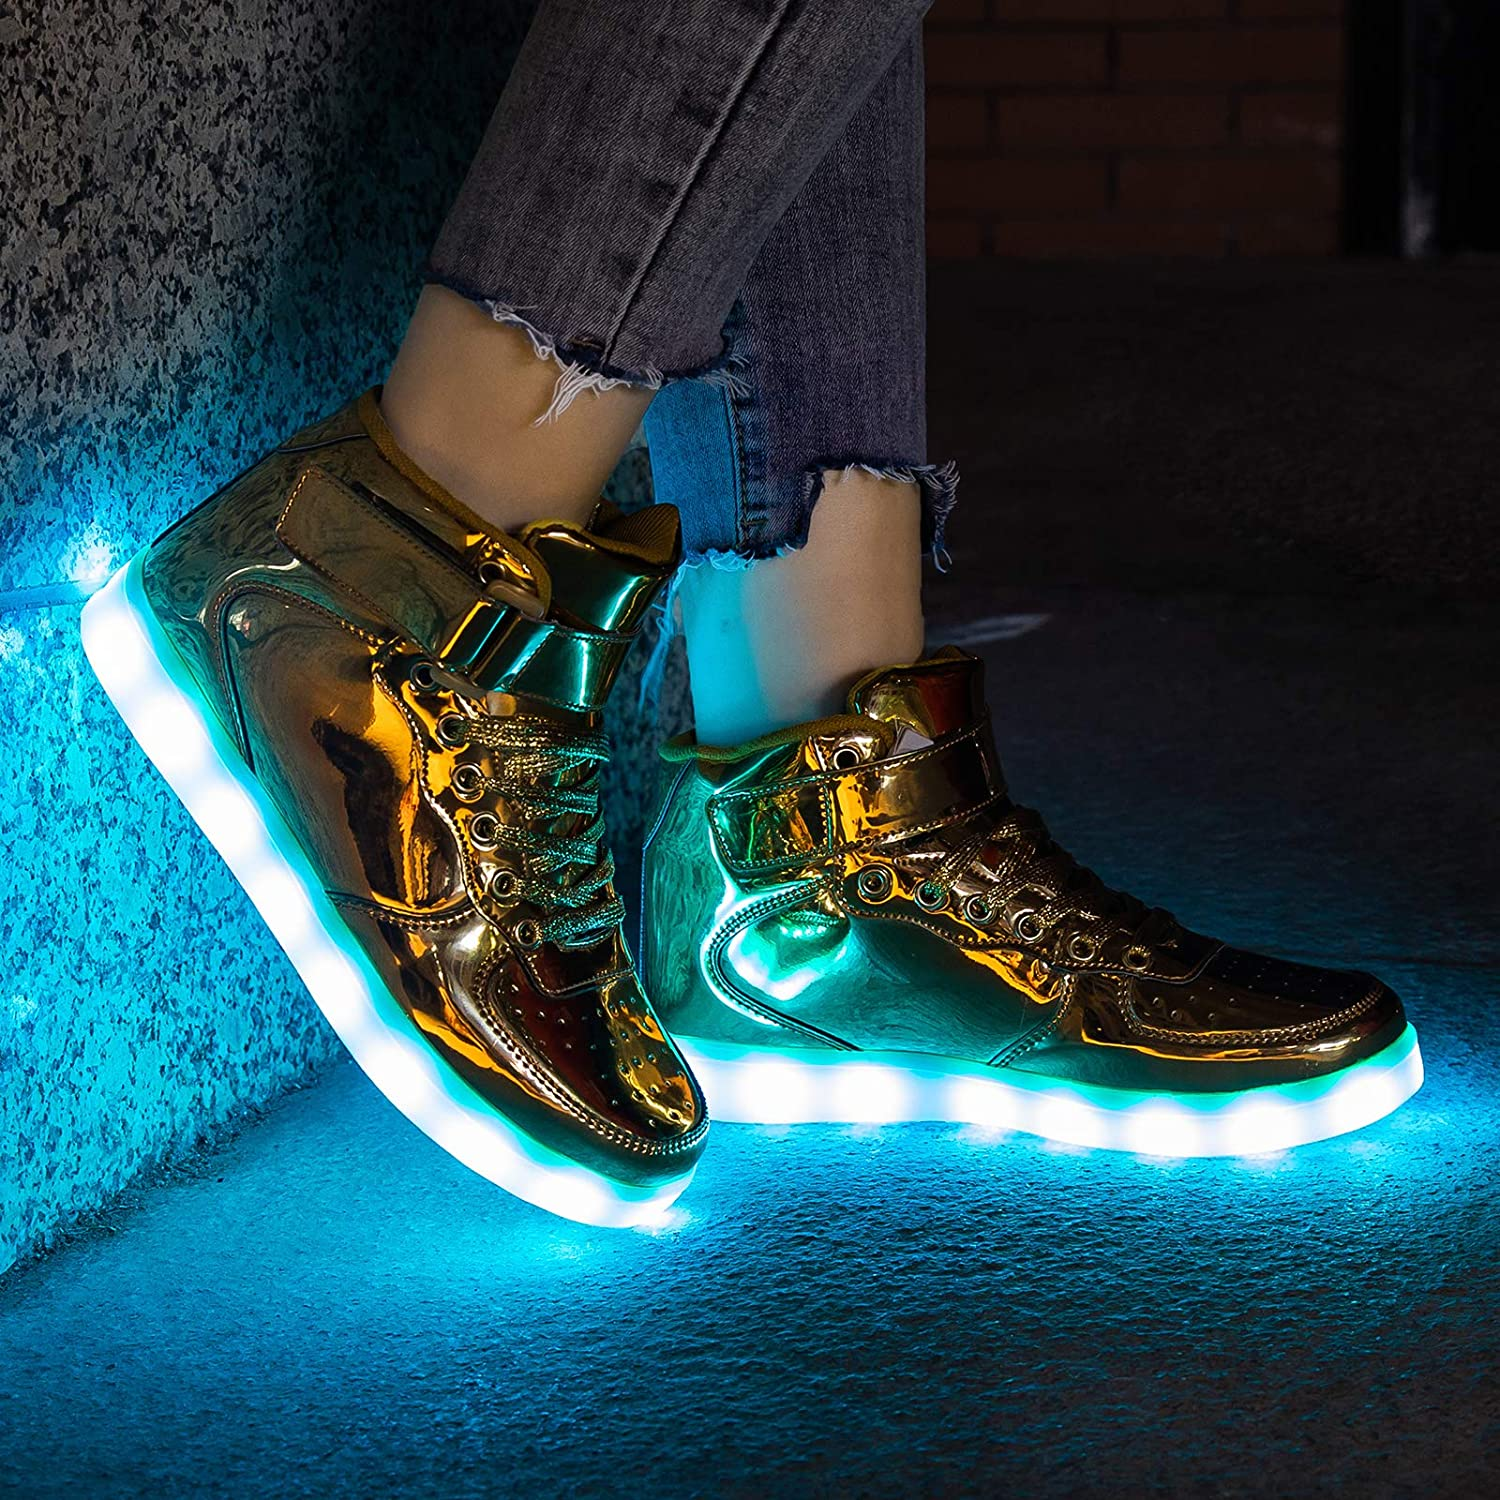 A2kmsmss5a Dance Sneakers Boys /& Girls LED Light Up Star Pattern Lace Up Luminous USA Flag Shoes Sneakers Halloween